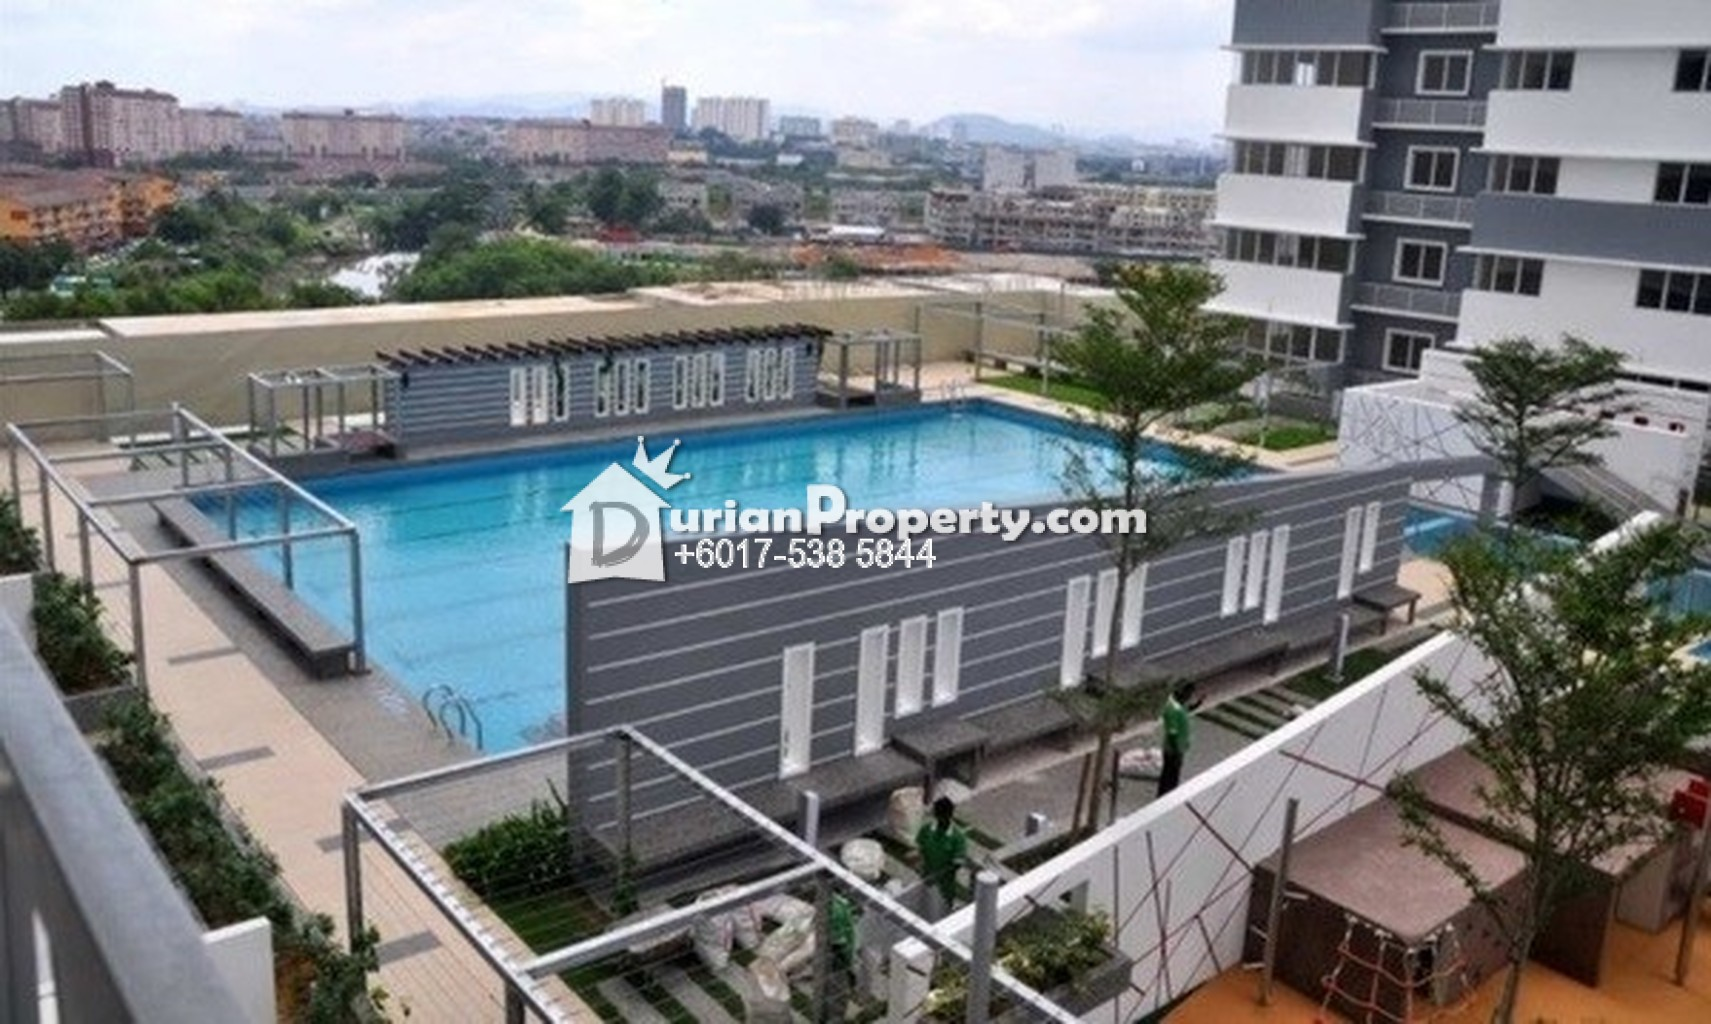 Condo for sale at koi kinrara bandar puchong jaya for for Koi kinrara swimming pool